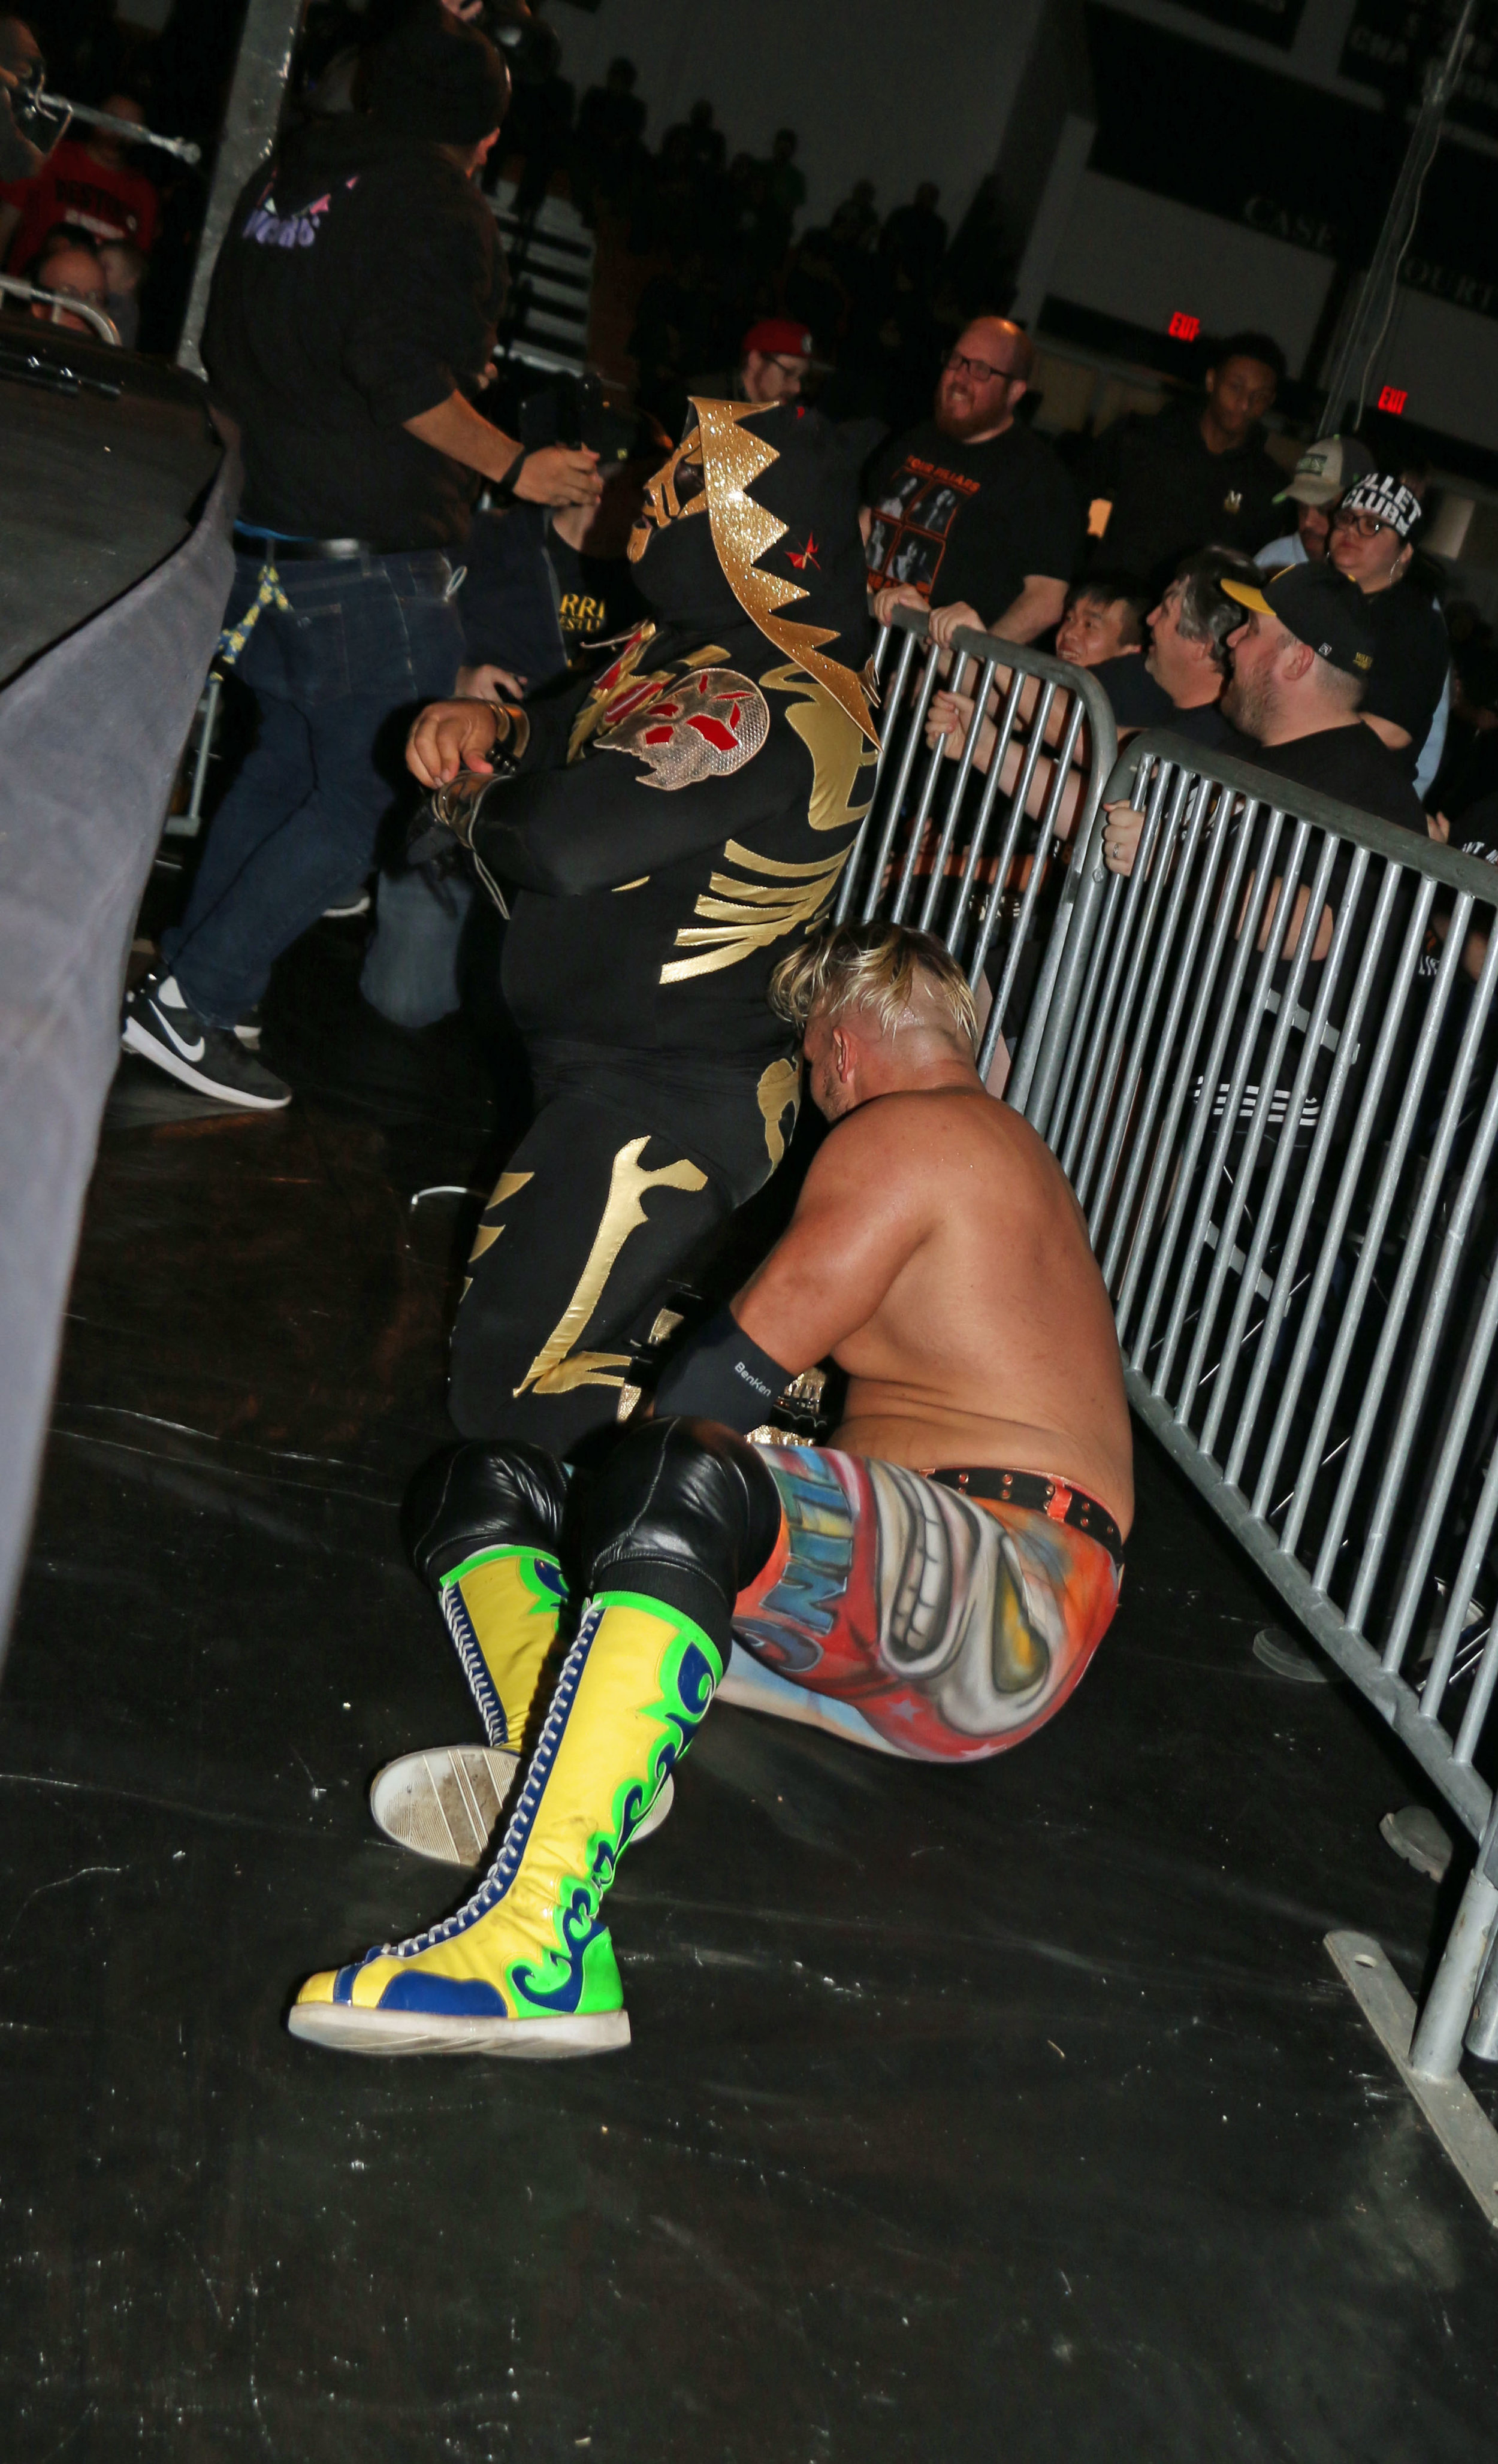 LA Park gets up after diving onto Sam Adonis on the outside of the ring.